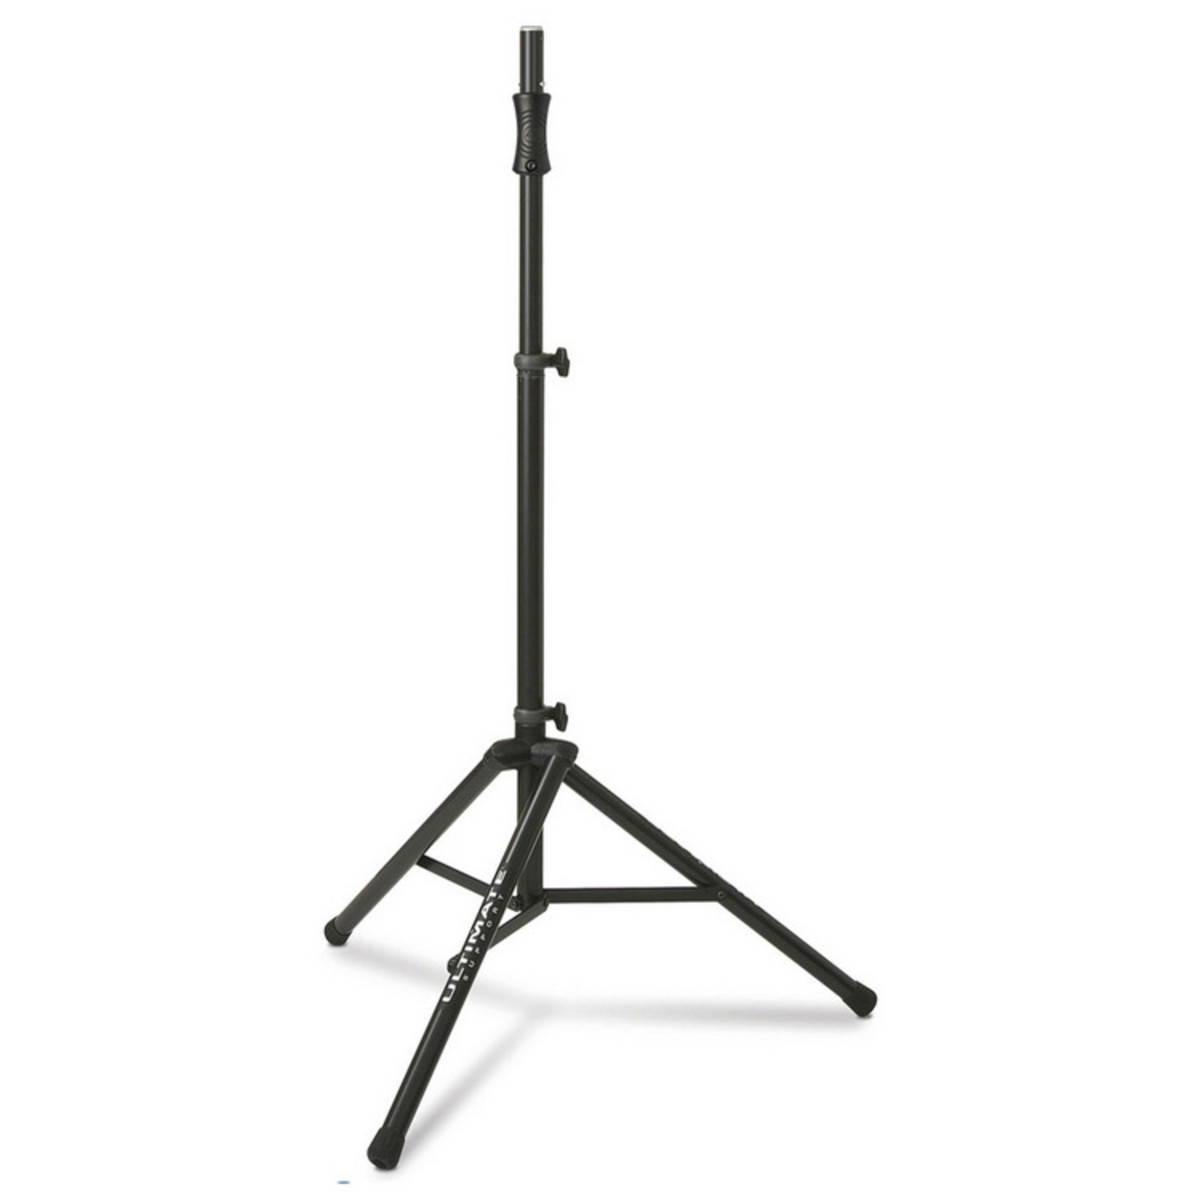 Ultimate Support TS100B Hydraulic Tripod Speaker Stand at